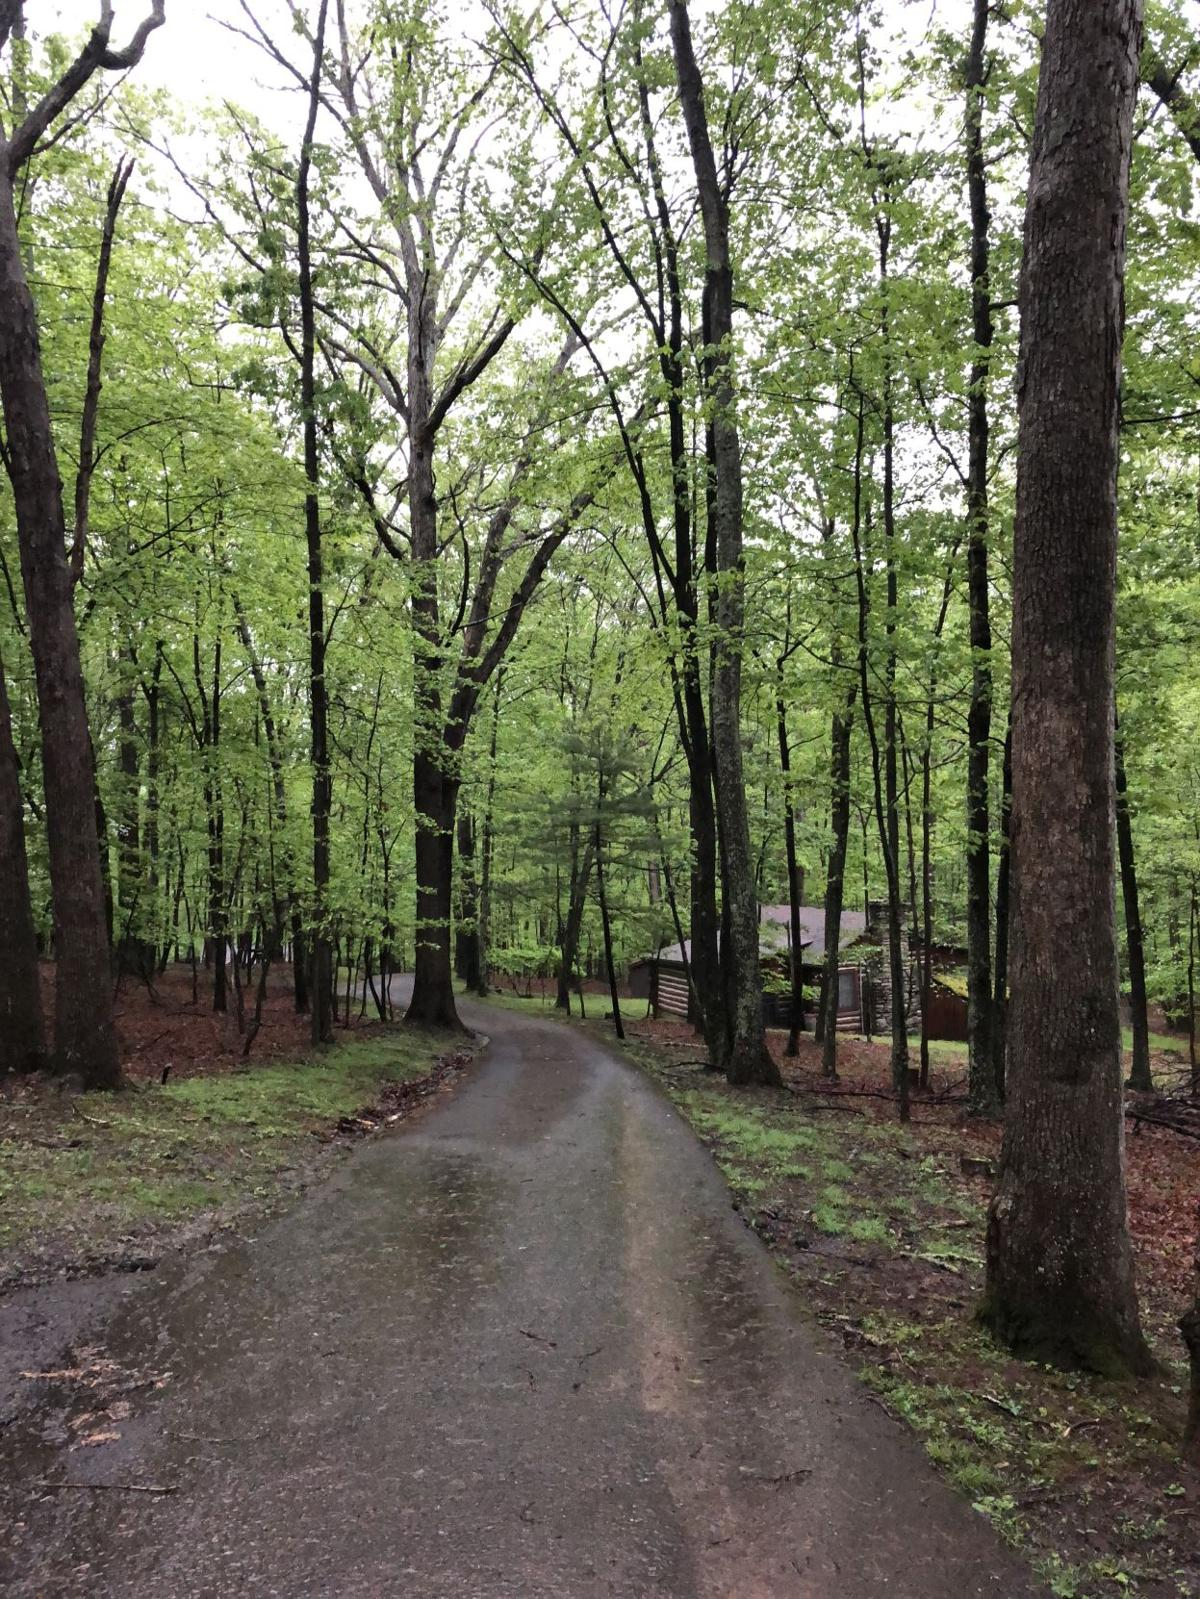 The beautiful forest at Lost River State Park.